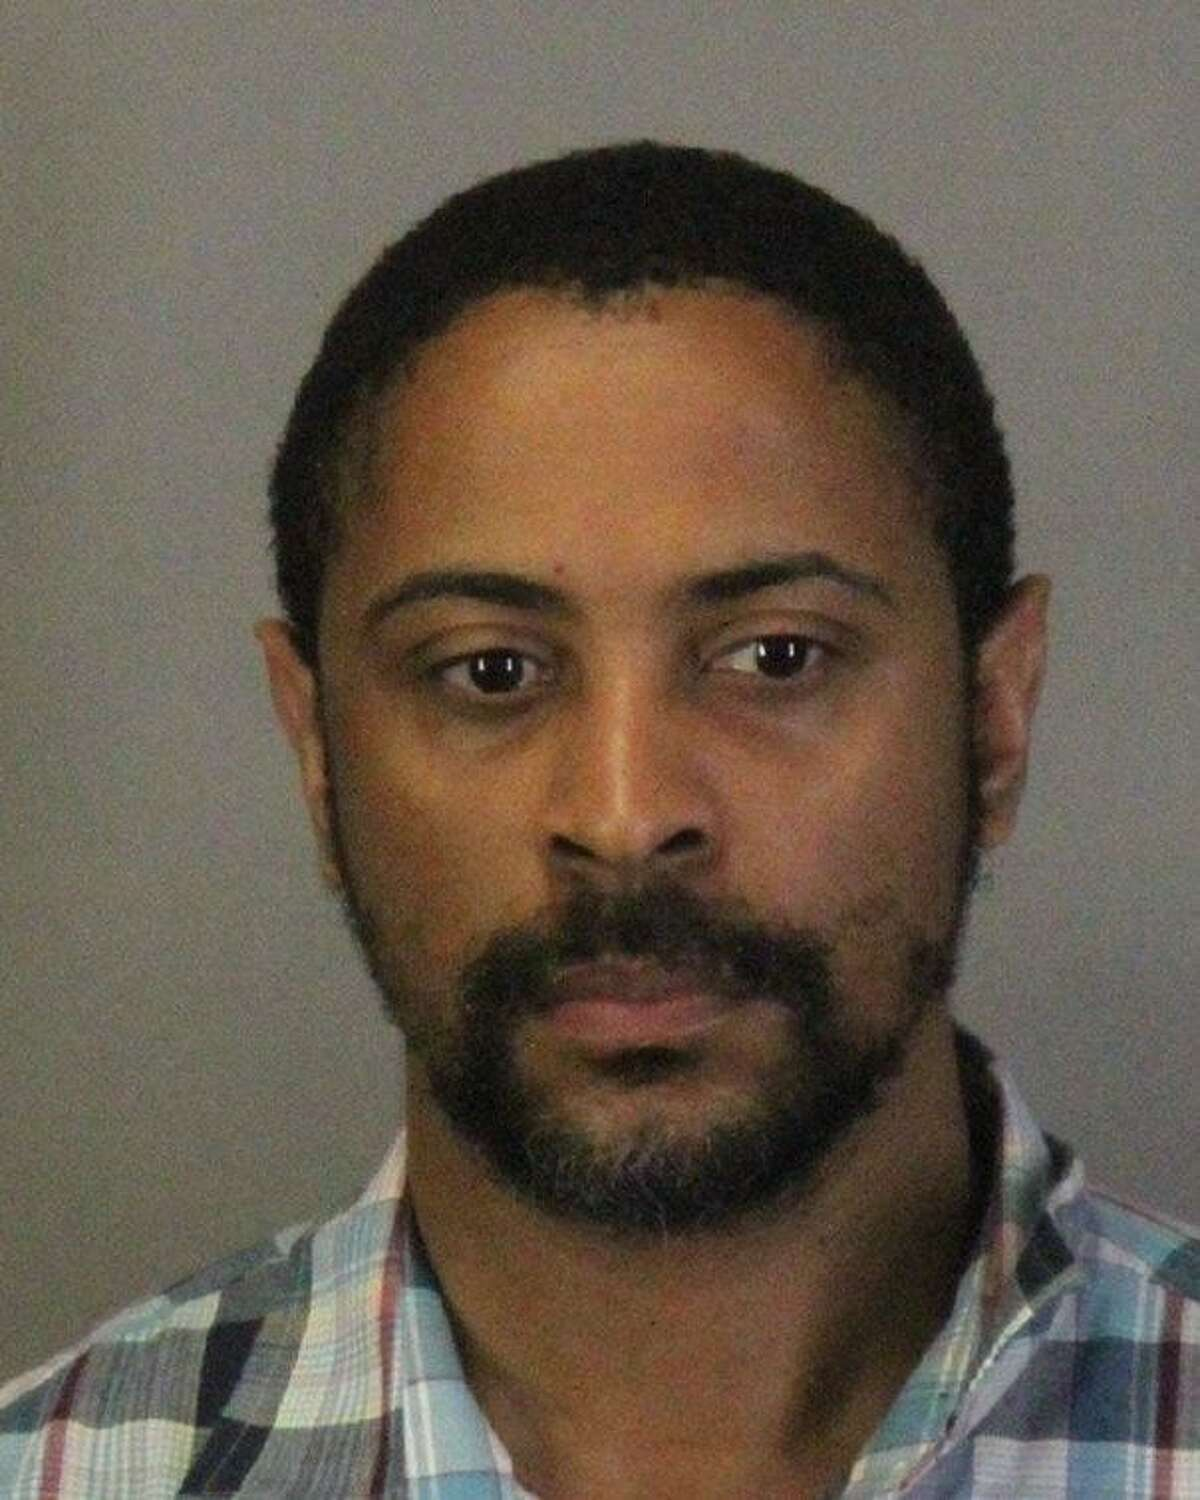 Isaiah Peoples, 34, was identified by police as the driver who stuck eight pedestrians Tuesday evening in Sunnyvale.